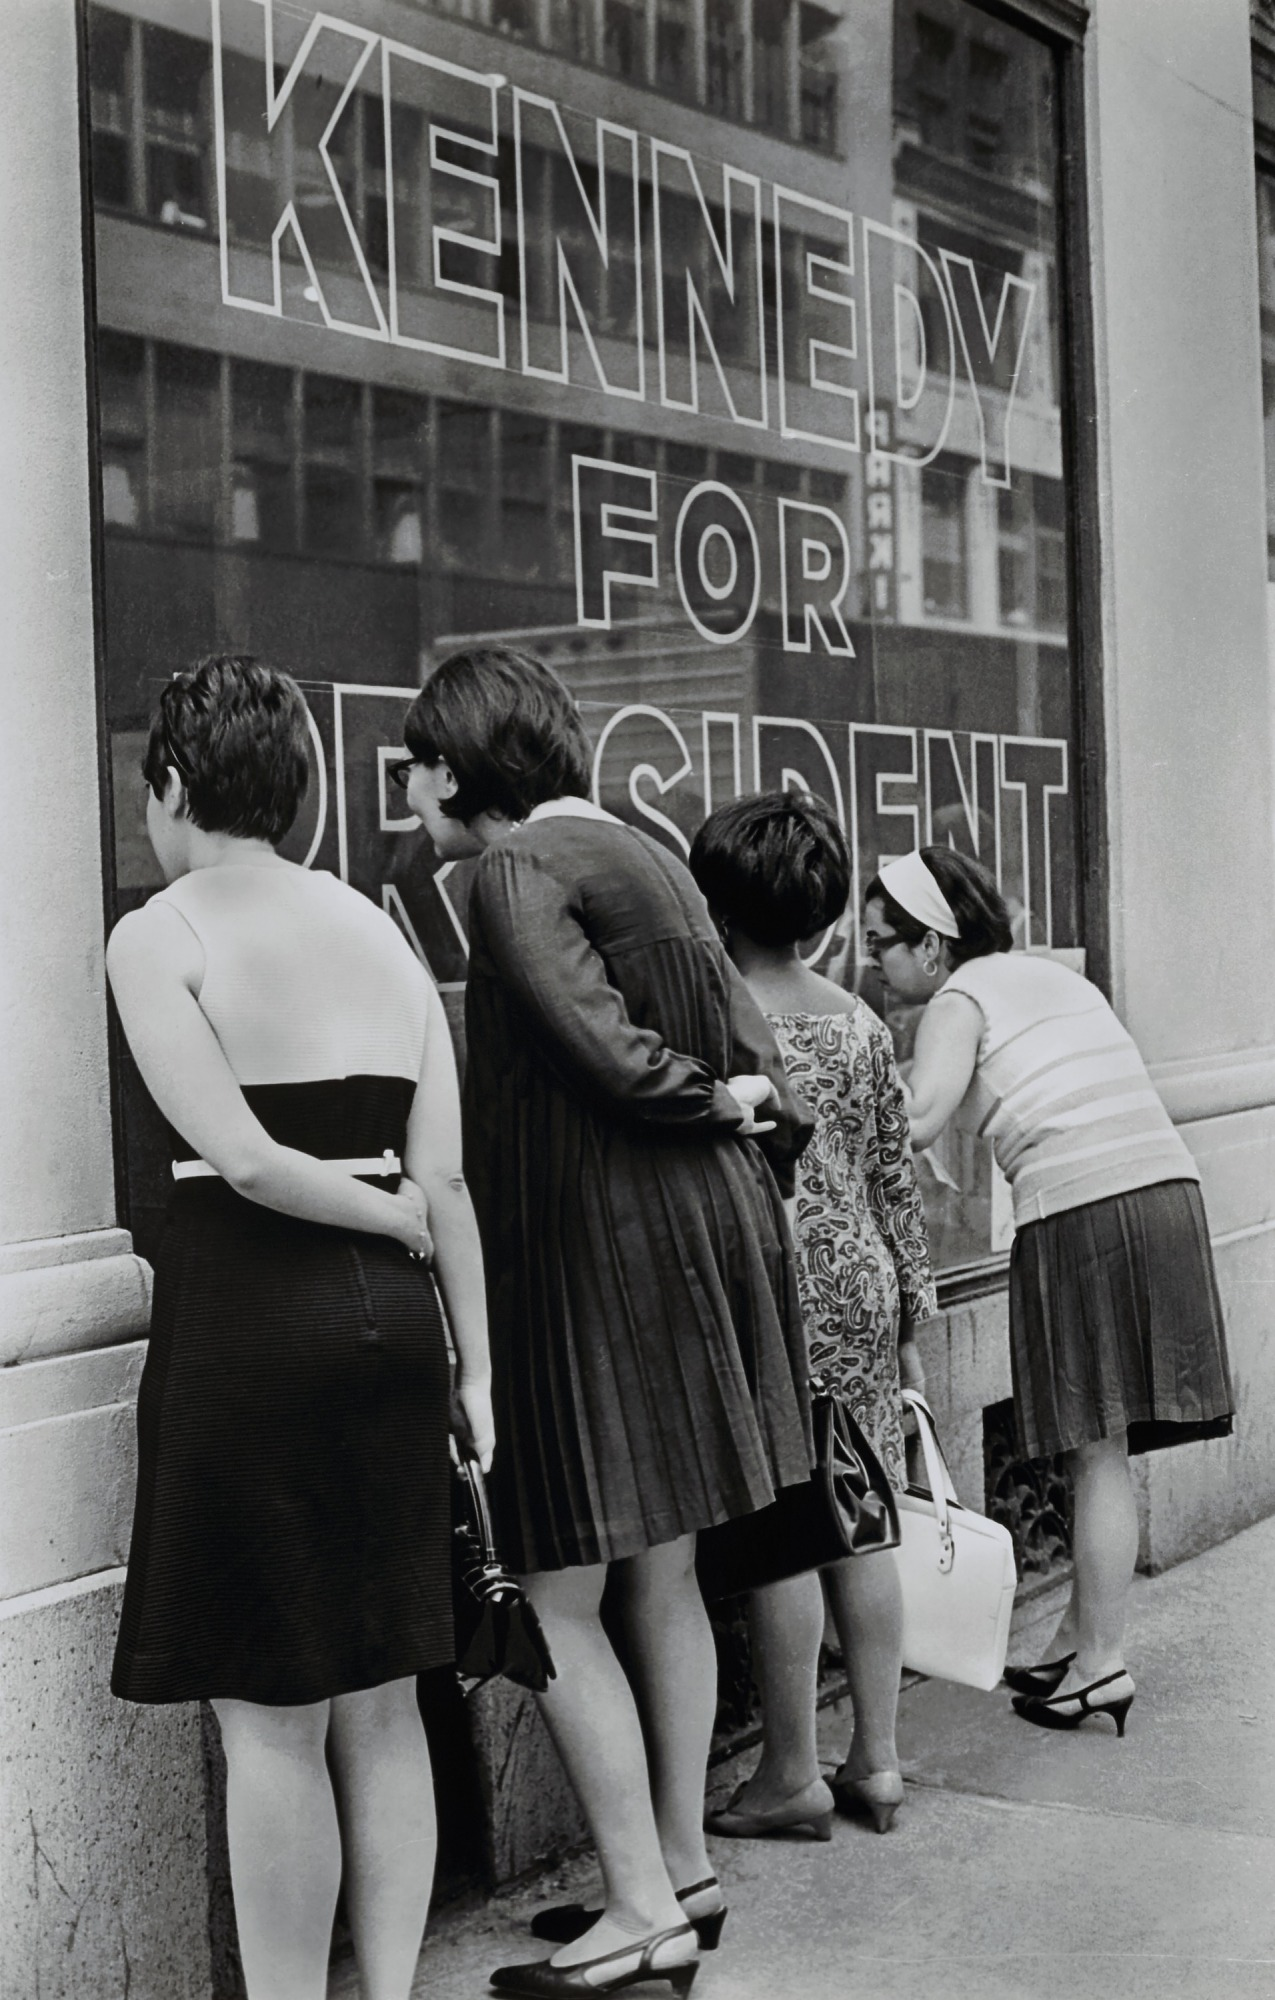 images for Robert Kennedy's Campaign Office, New York